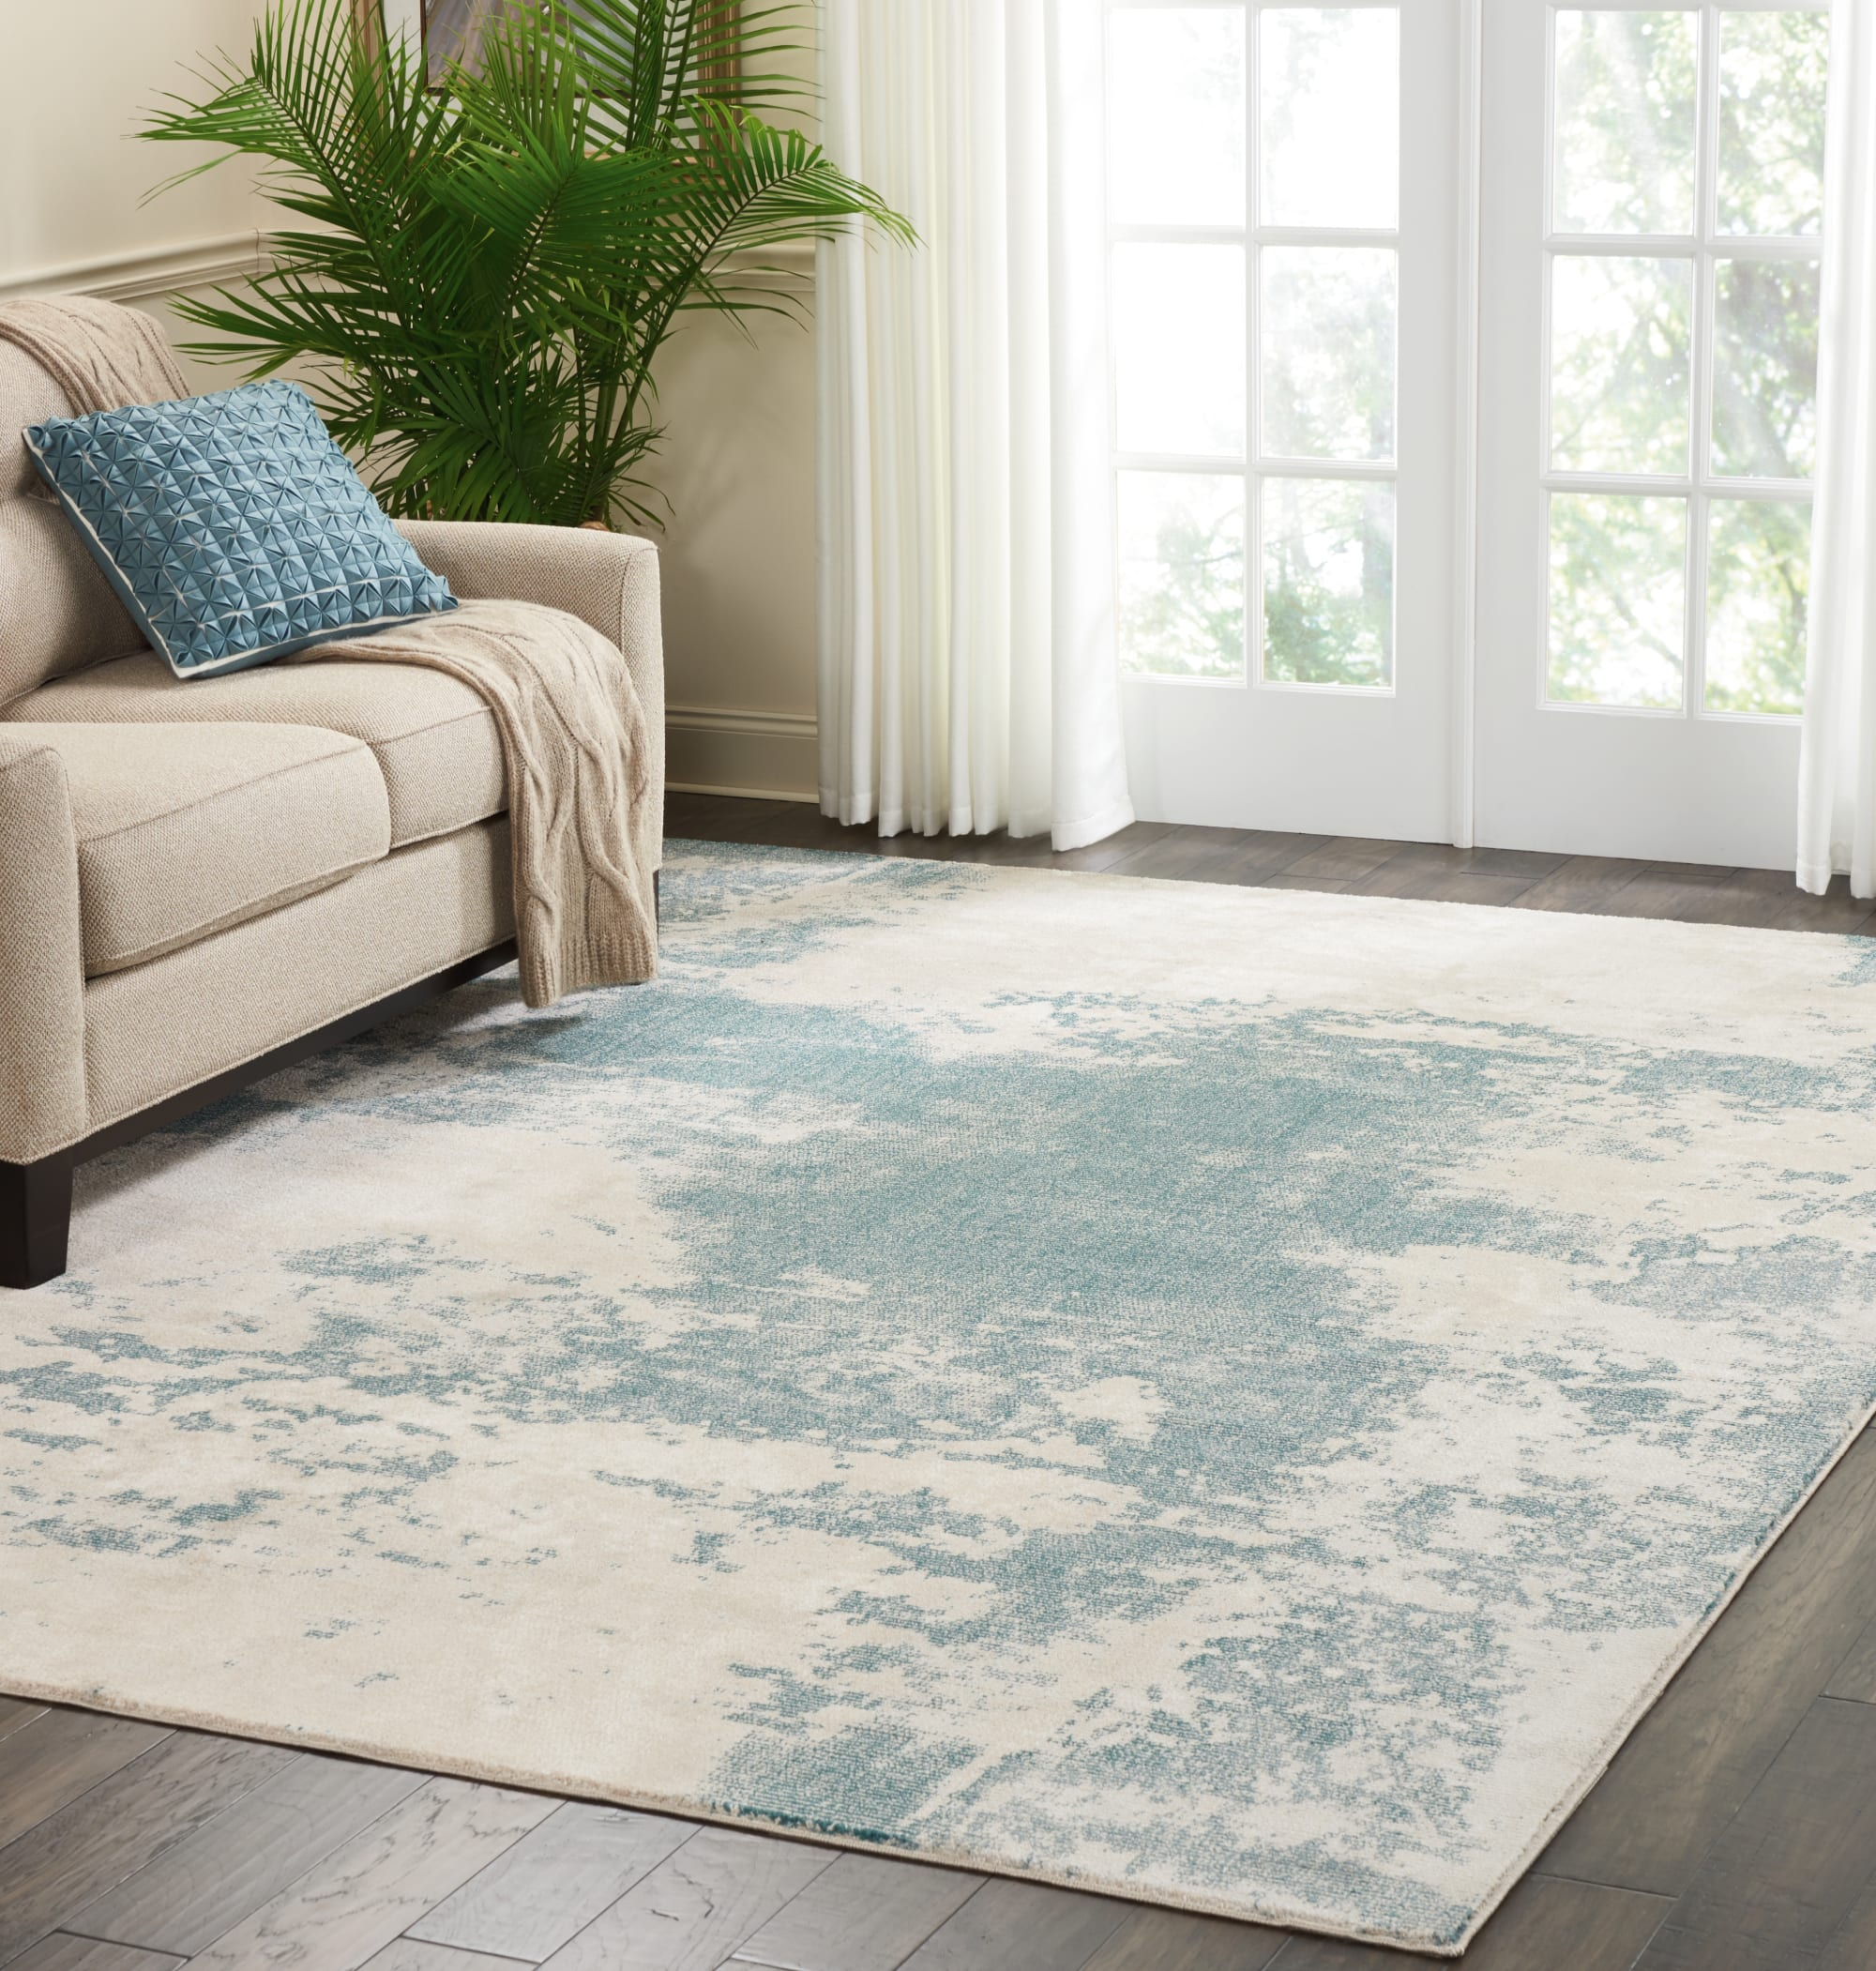 Maxell Rug MAE13 Ivory/Teal